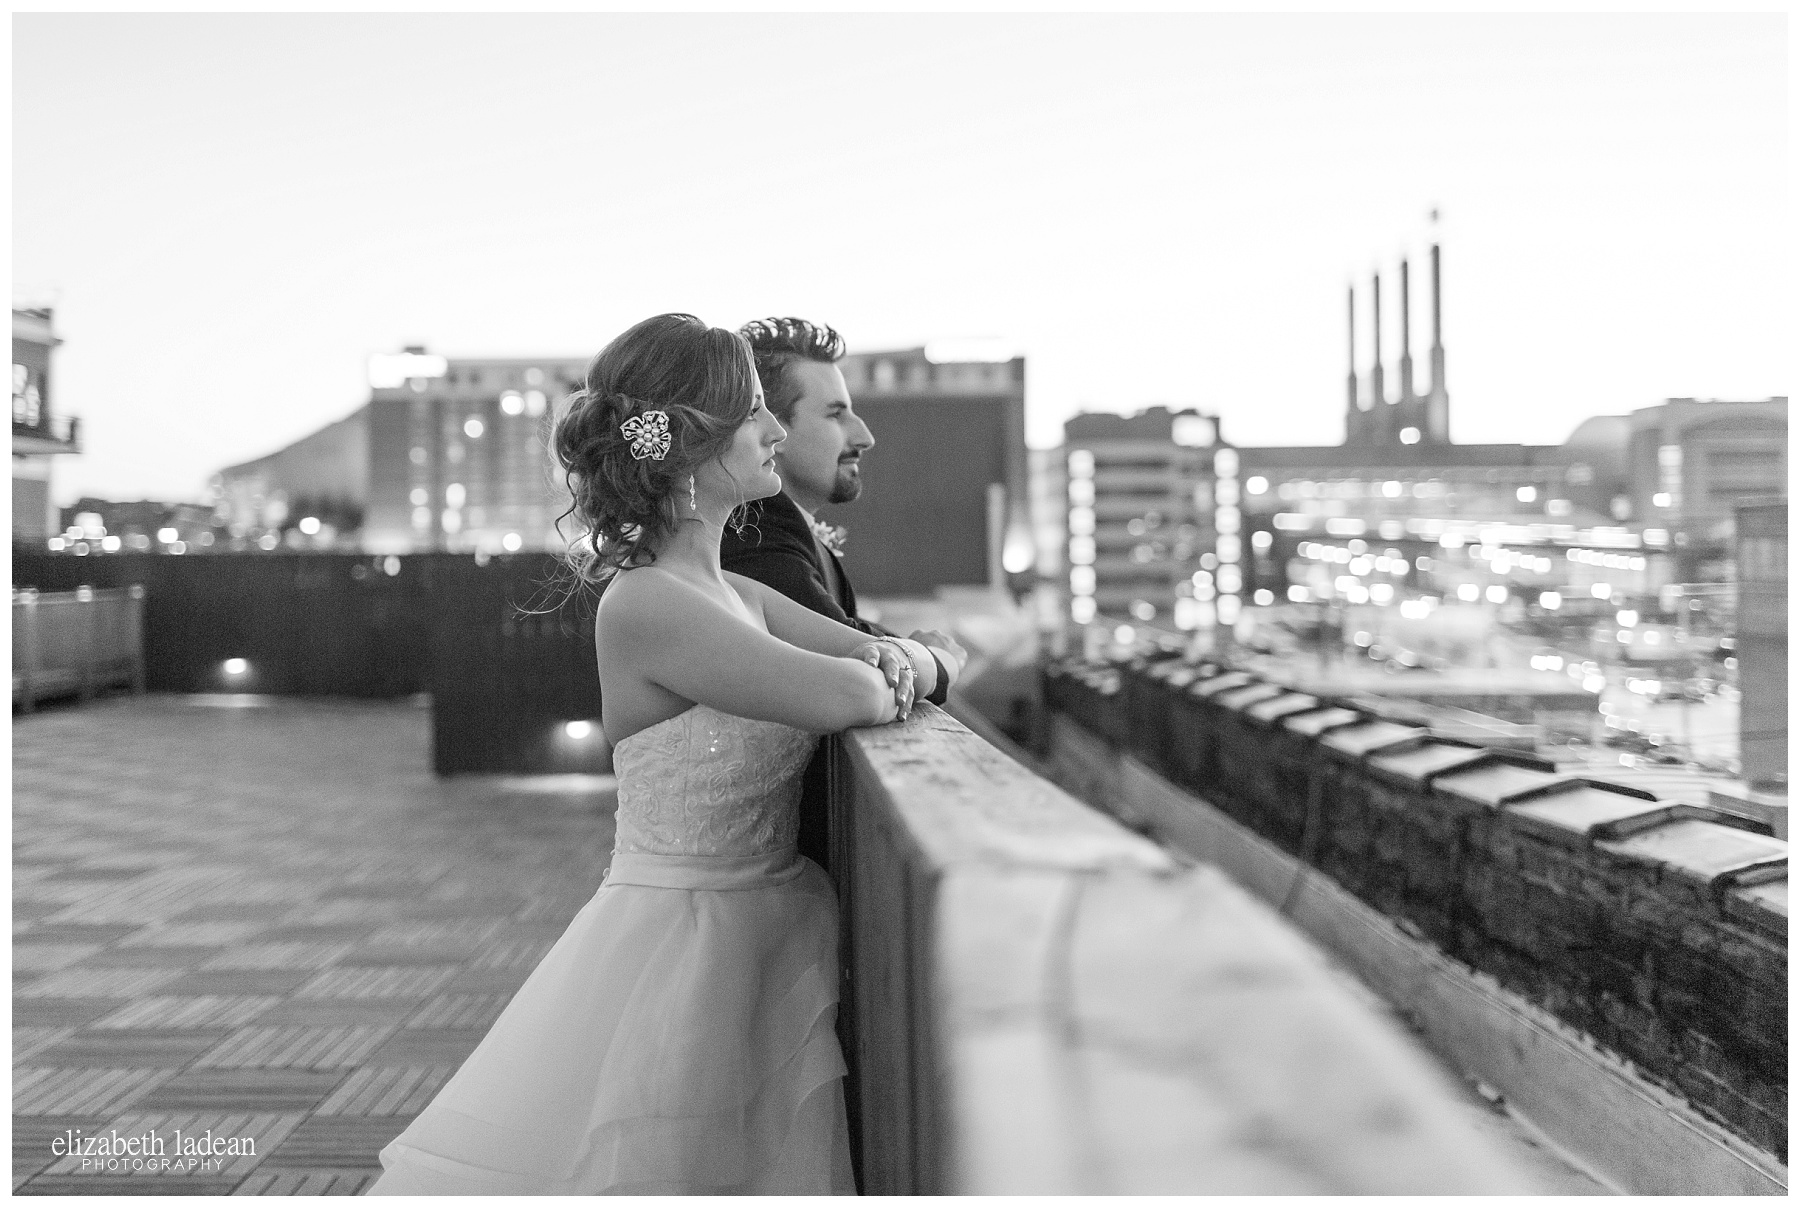 Terrace-on-Grand-Kansas-City-Wedding-Photography-C+J-0506-Elizabeth-Ladean-Photography-photo_0667.jpg